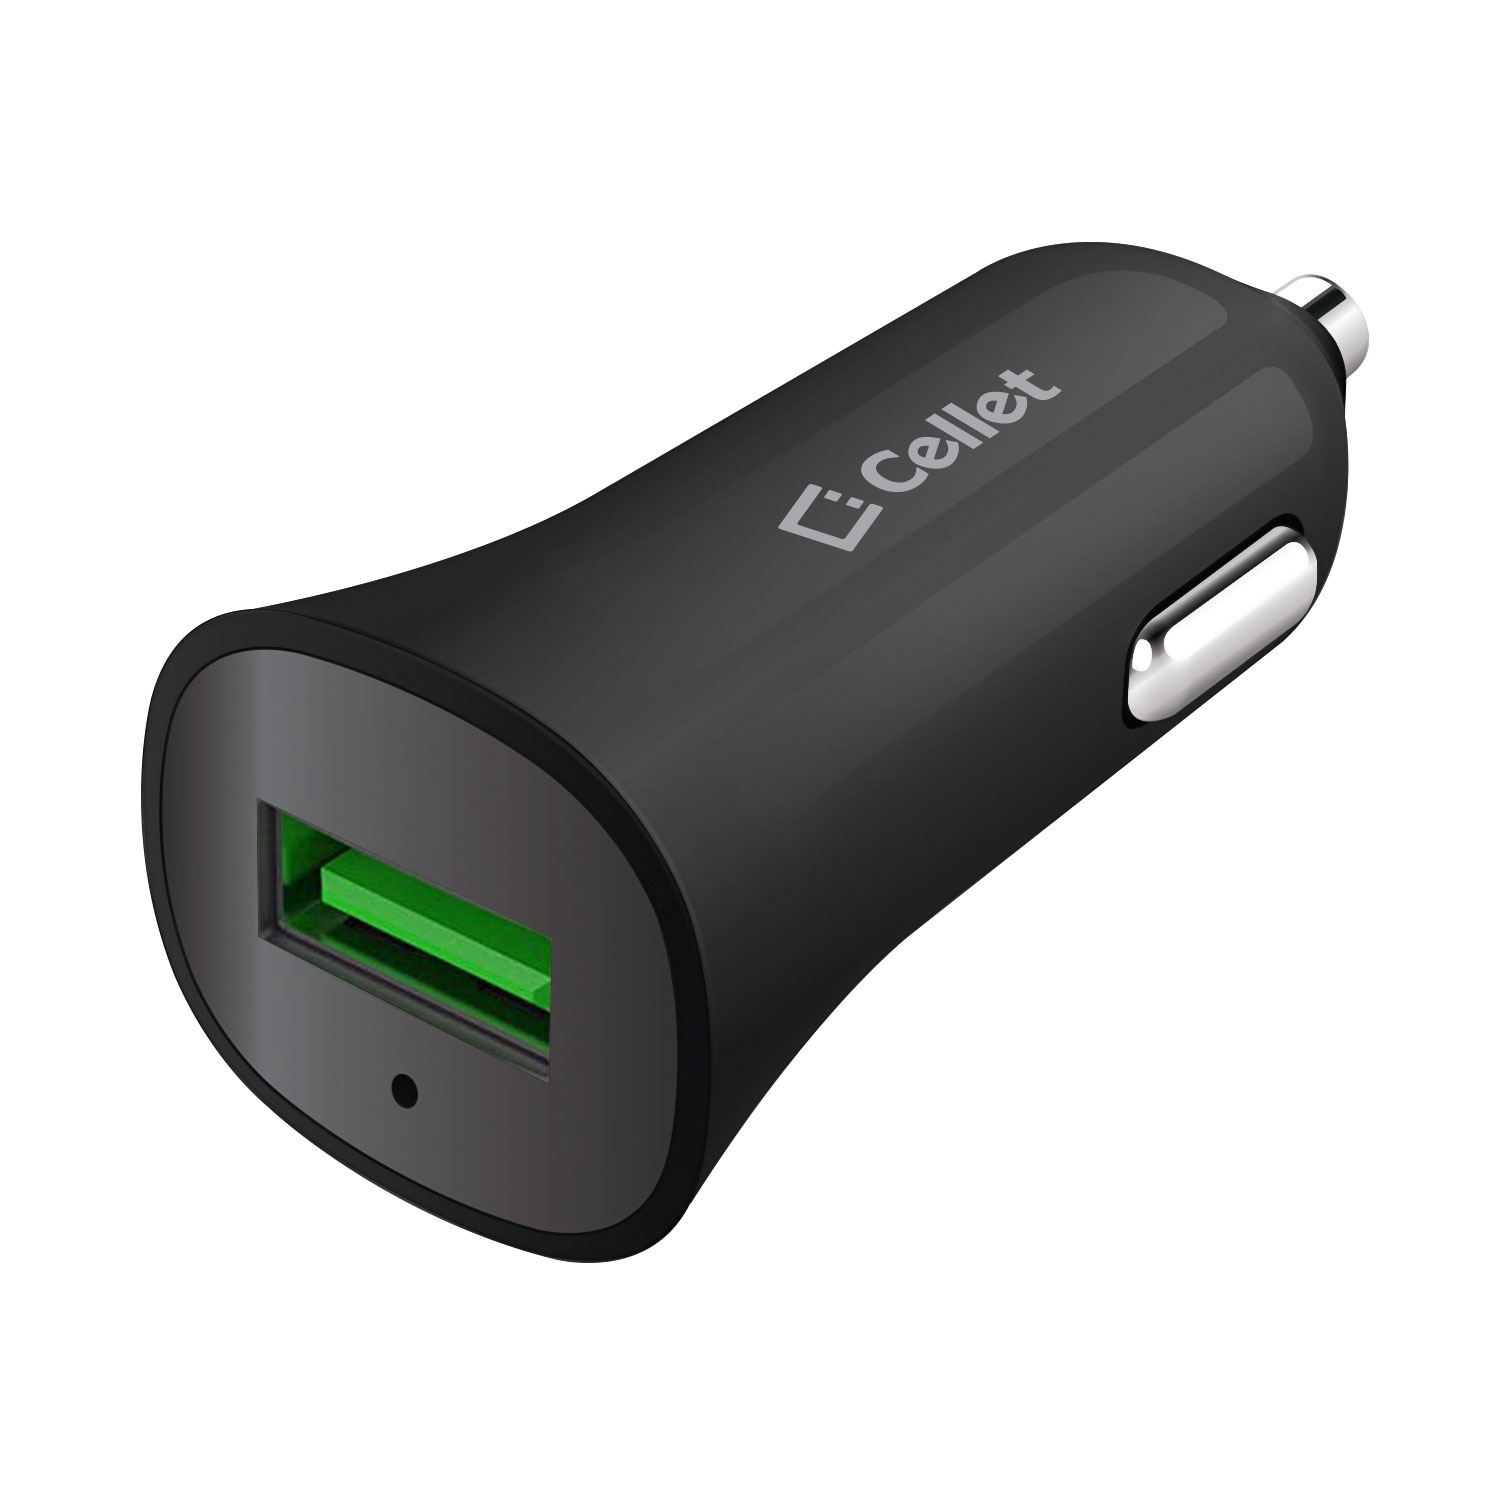 Asus ZenFone 2E Car Charger Quick Charge 3.0 Black 3.3ft